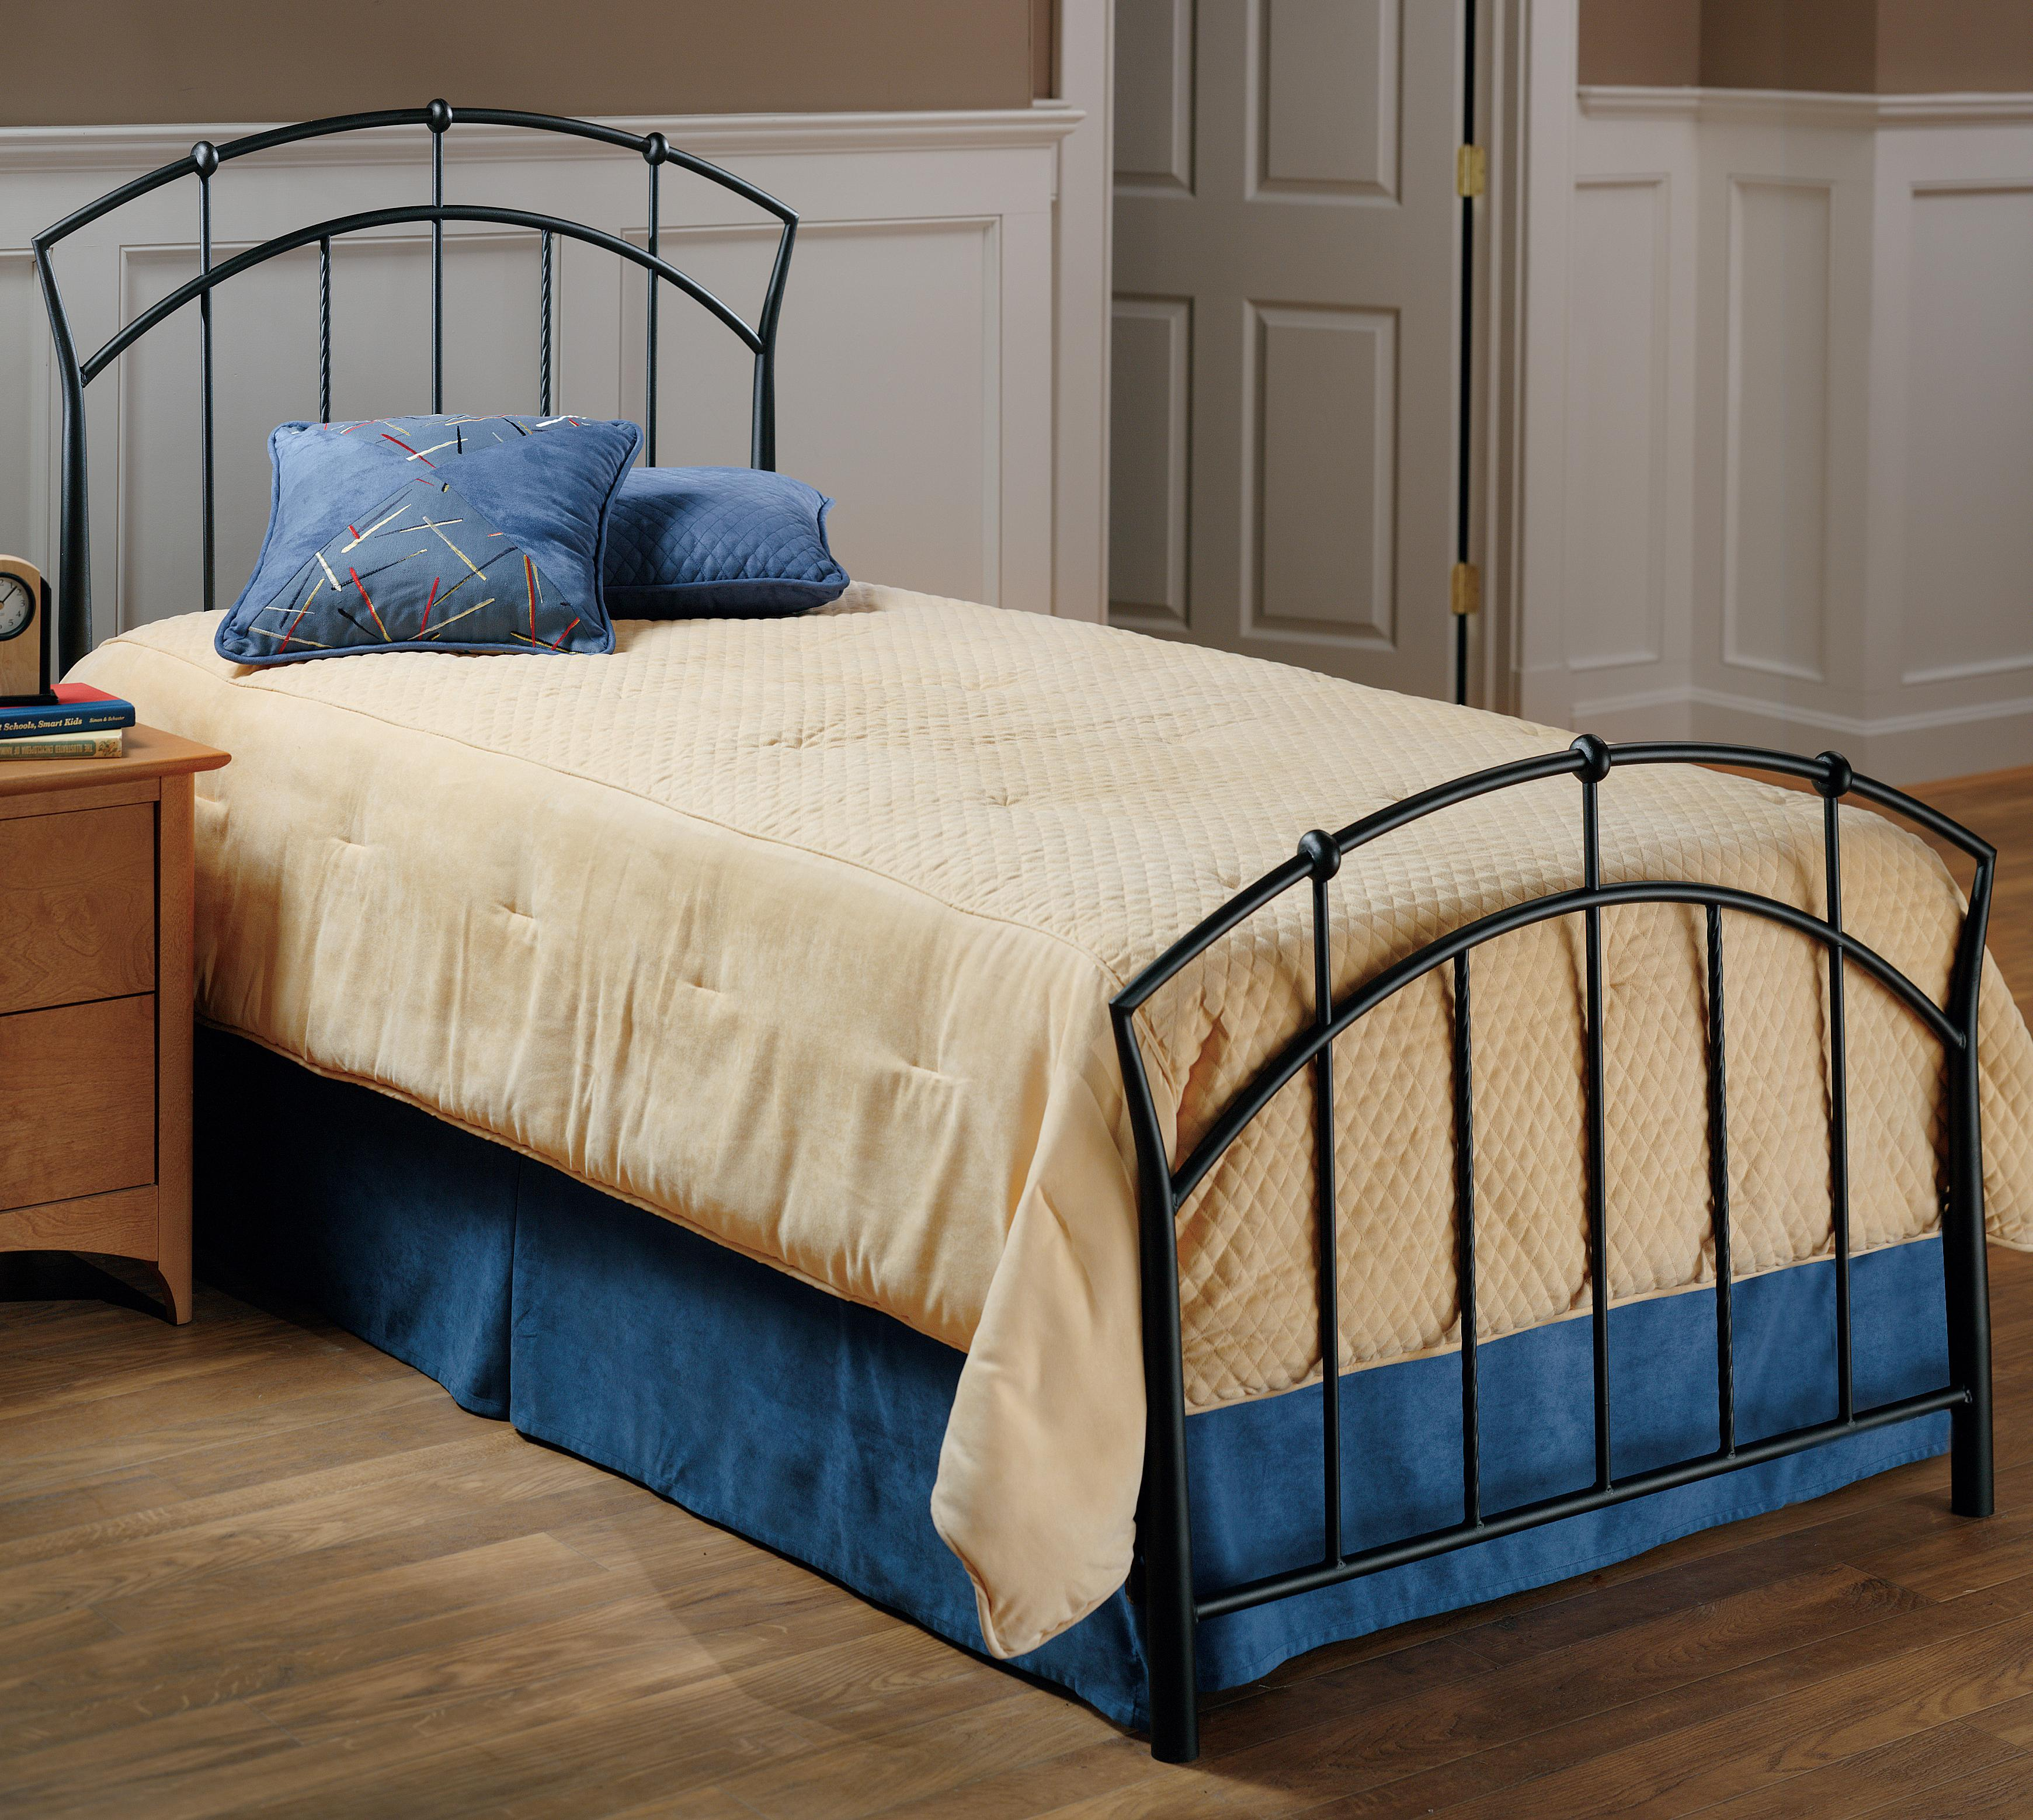 Hillsdale metal beds 1024btwr twin vancouver bed becker for Beds vancouver